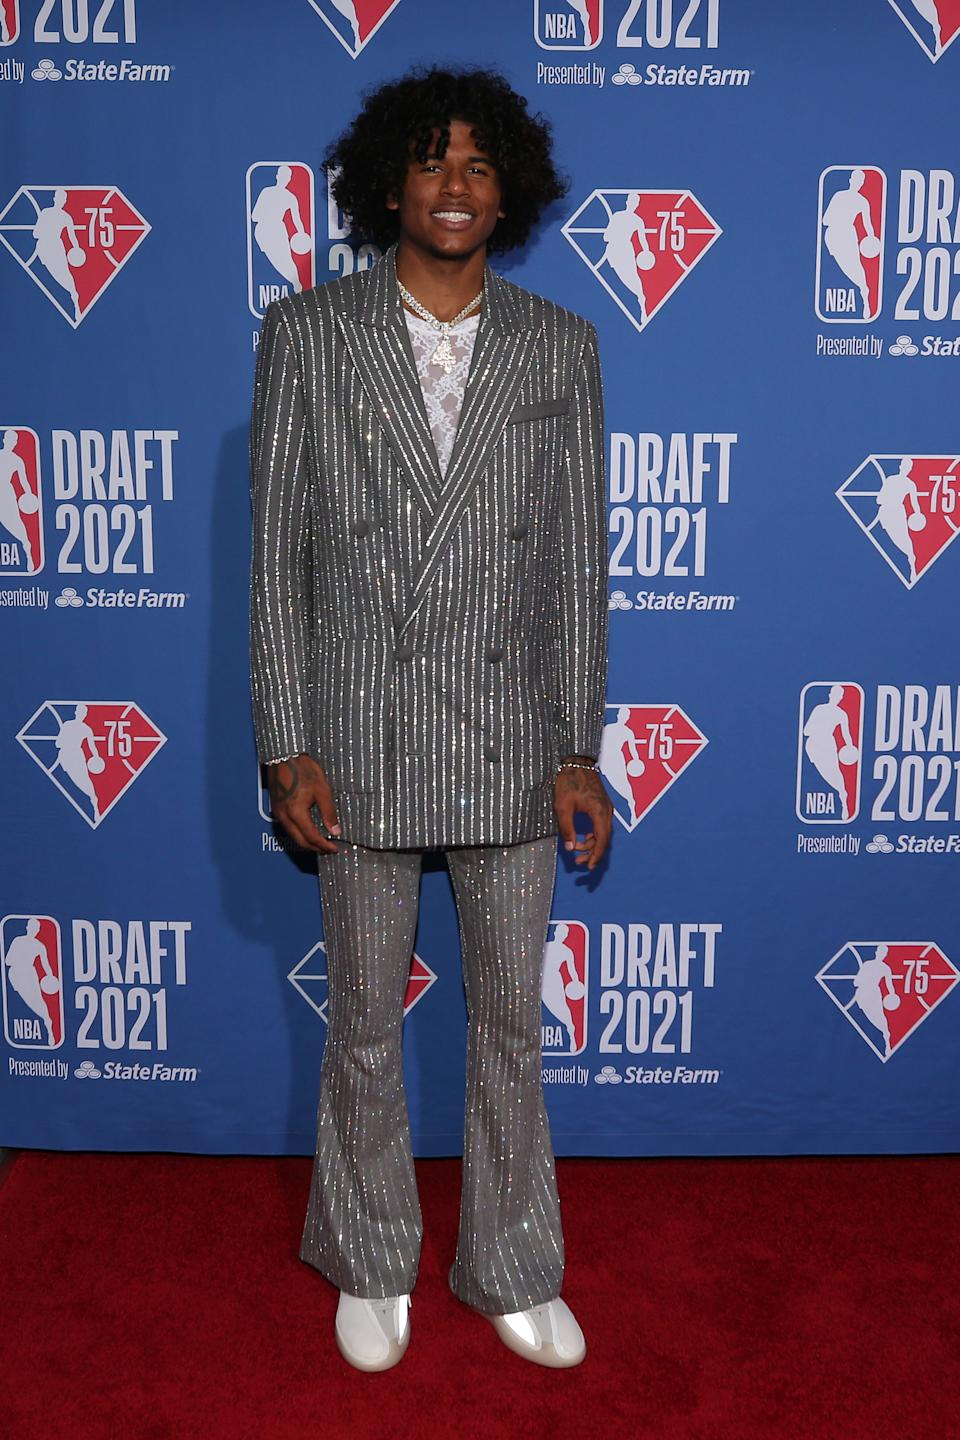 Jalen Green (G League Ignite) arrives on the red carpet before the 2021 NBA draft at Barclays Center. (Brad Penner/USA TODAY Sports)